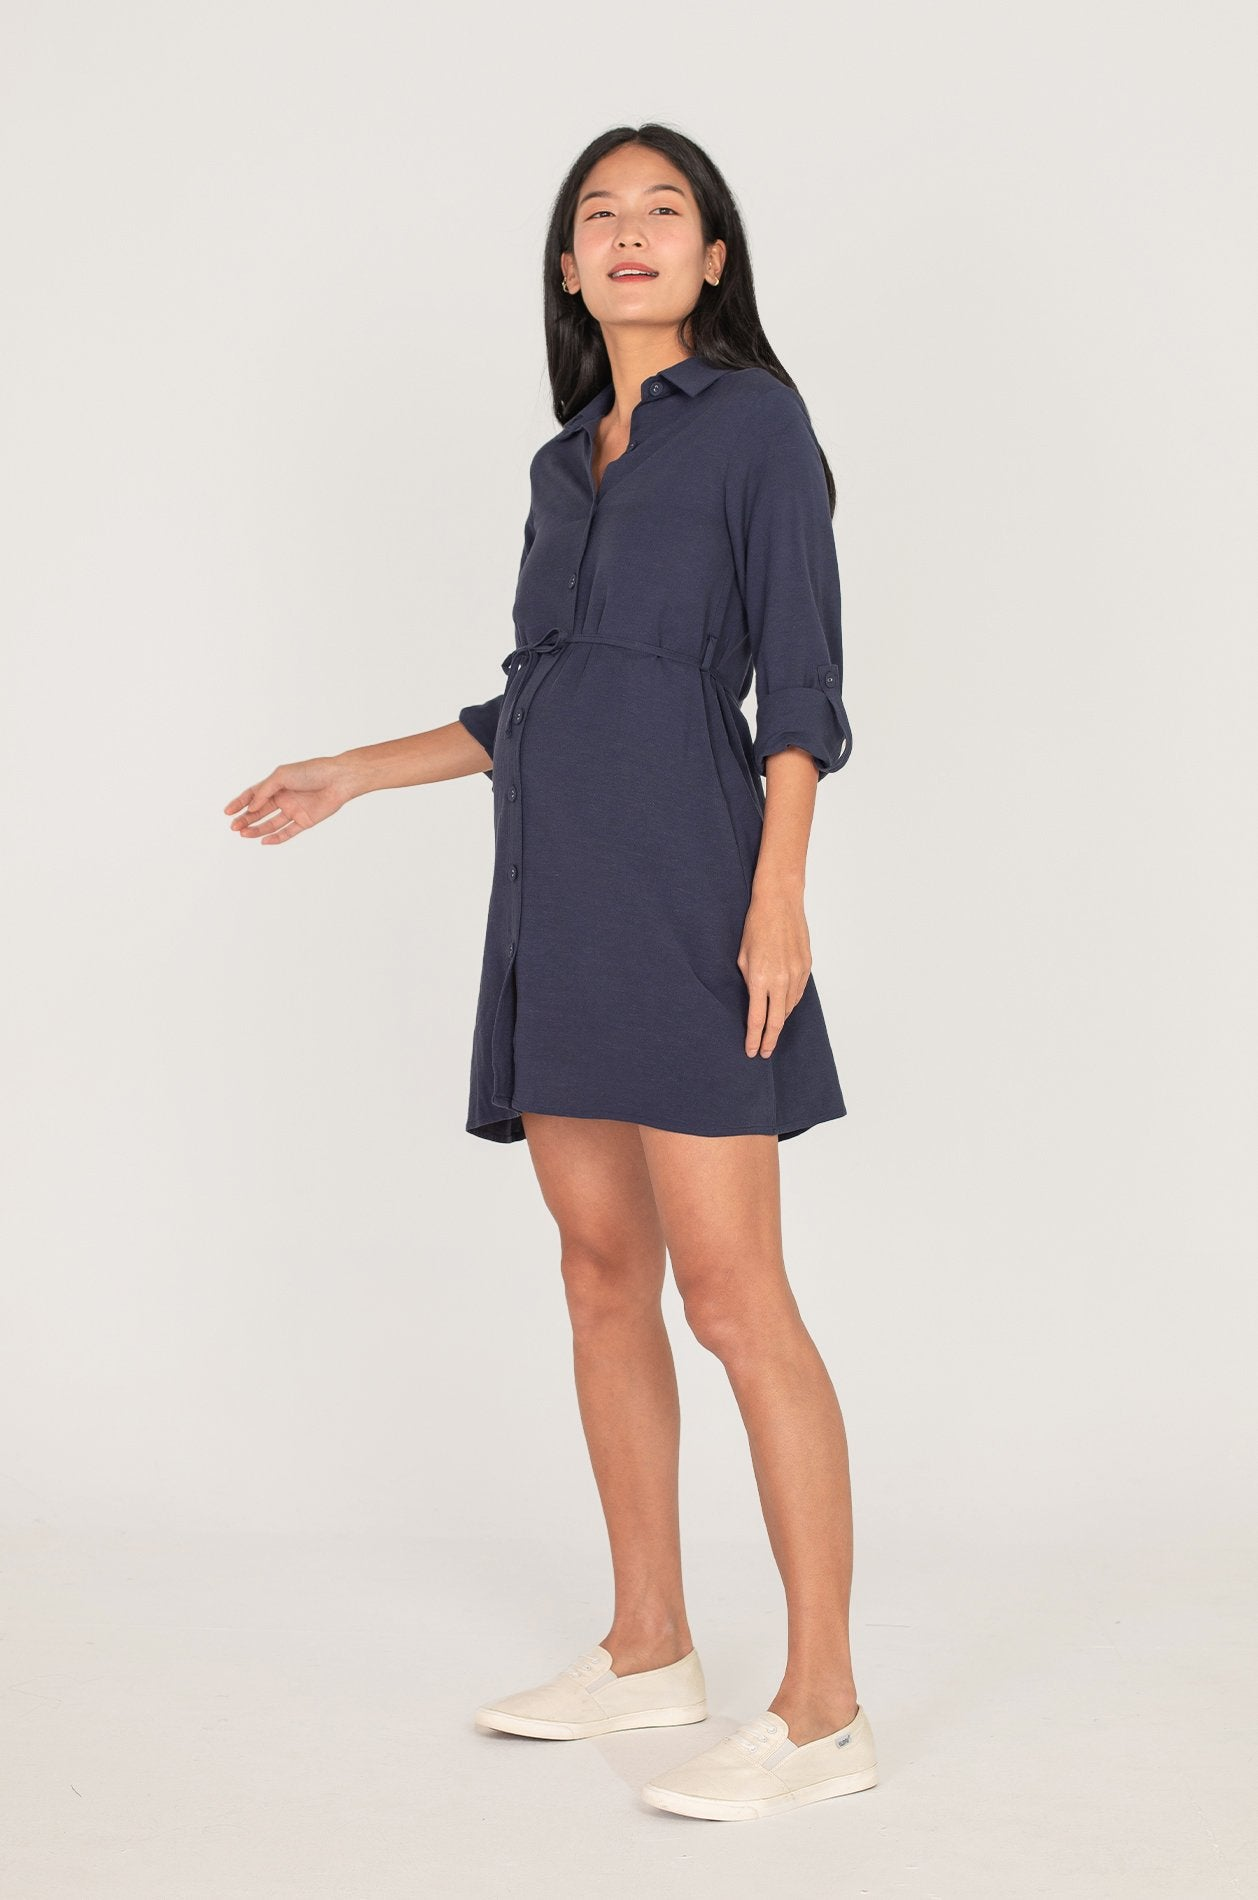 Cory Button Down Nursing Dress In Navy Nursing Wear Jump Eat Cry